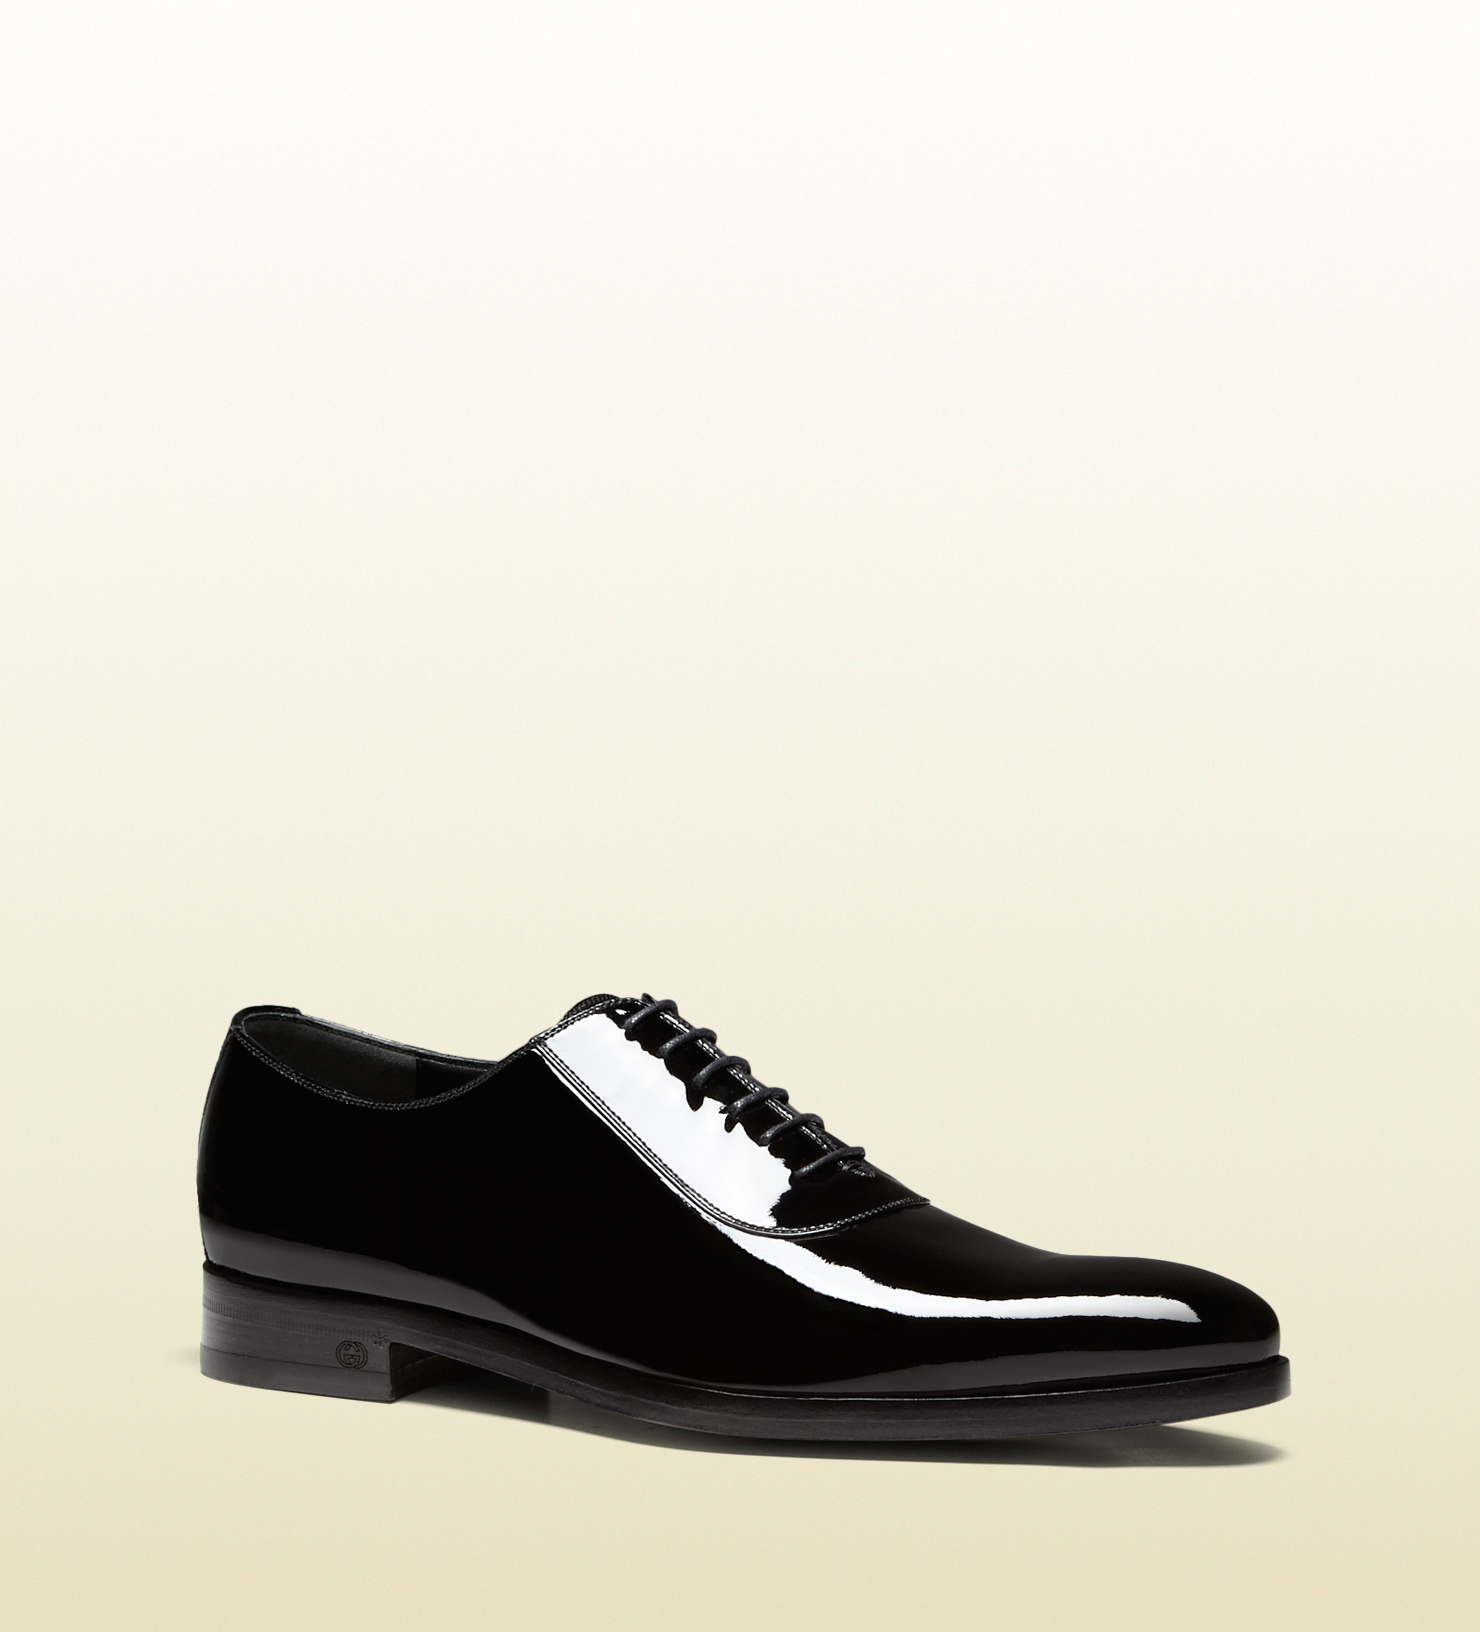 Gucci Mens Patent Leather Shoes